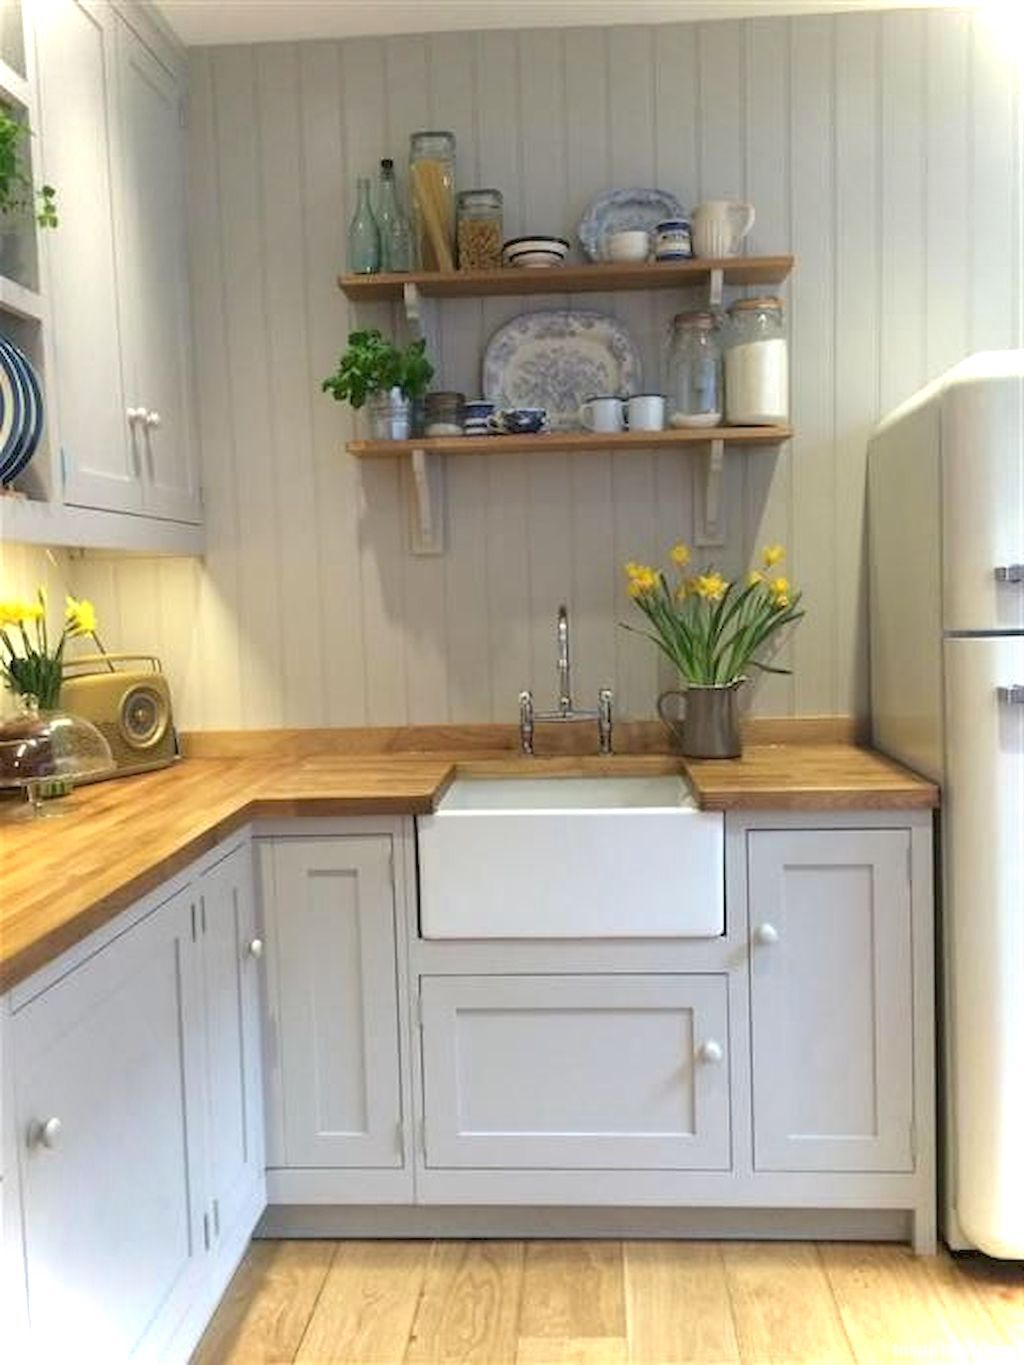 Pin By Roomaniac.com On Kitchen Ideas | Pinterest | Small Cottage Kitchen, Small  Cottages And Cottage Kitchens